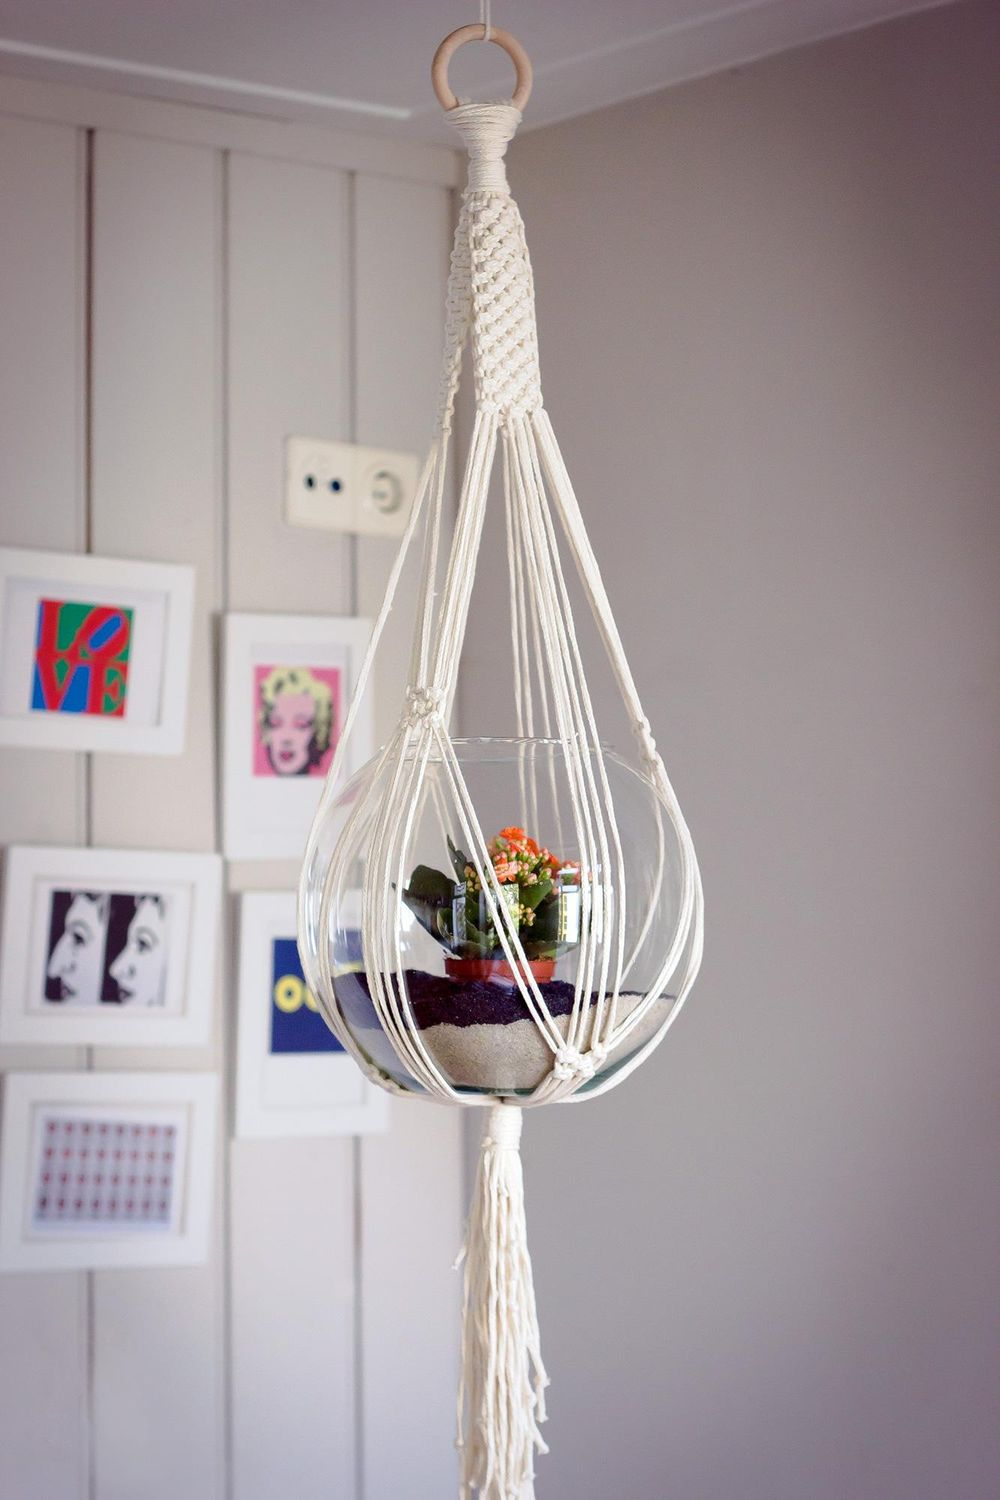 SHEESO - Handmade Macrame Products - image 4 - student project